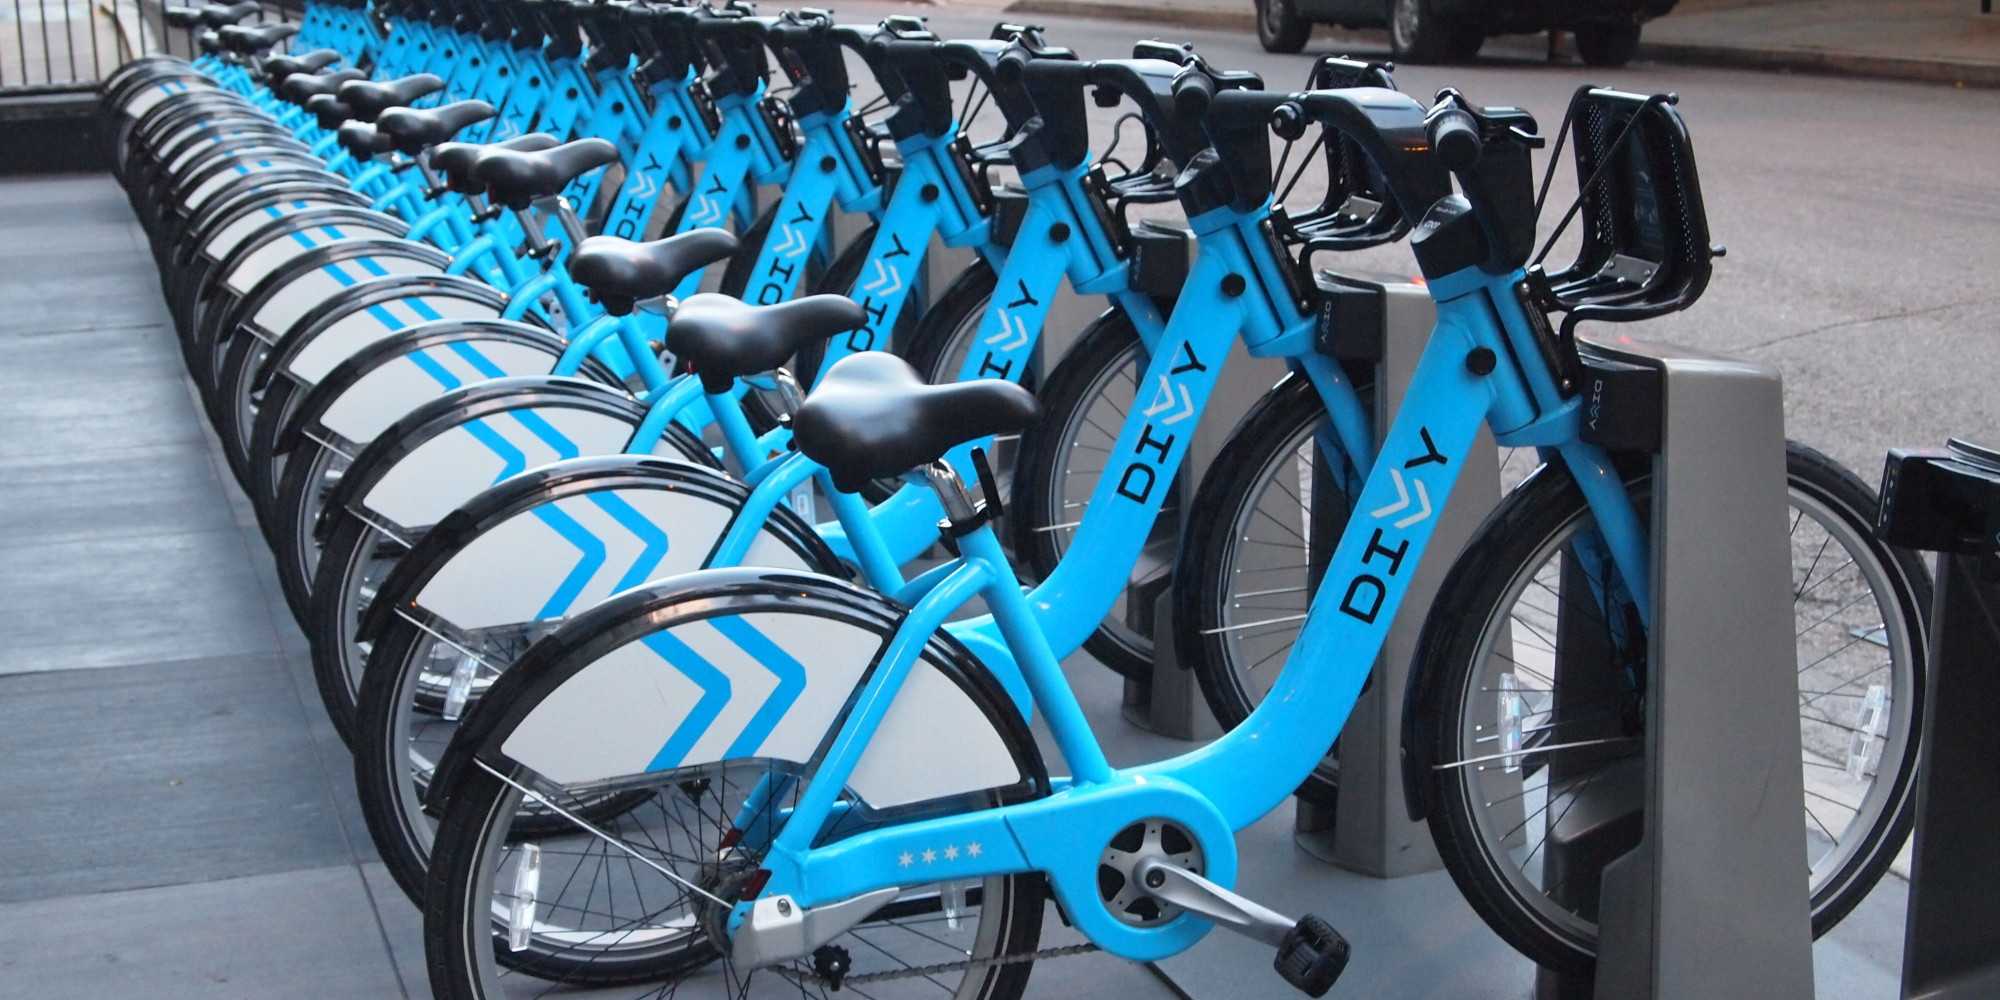 Divvy Bikes In Chicago Divvy Bikes Supplier Bixi